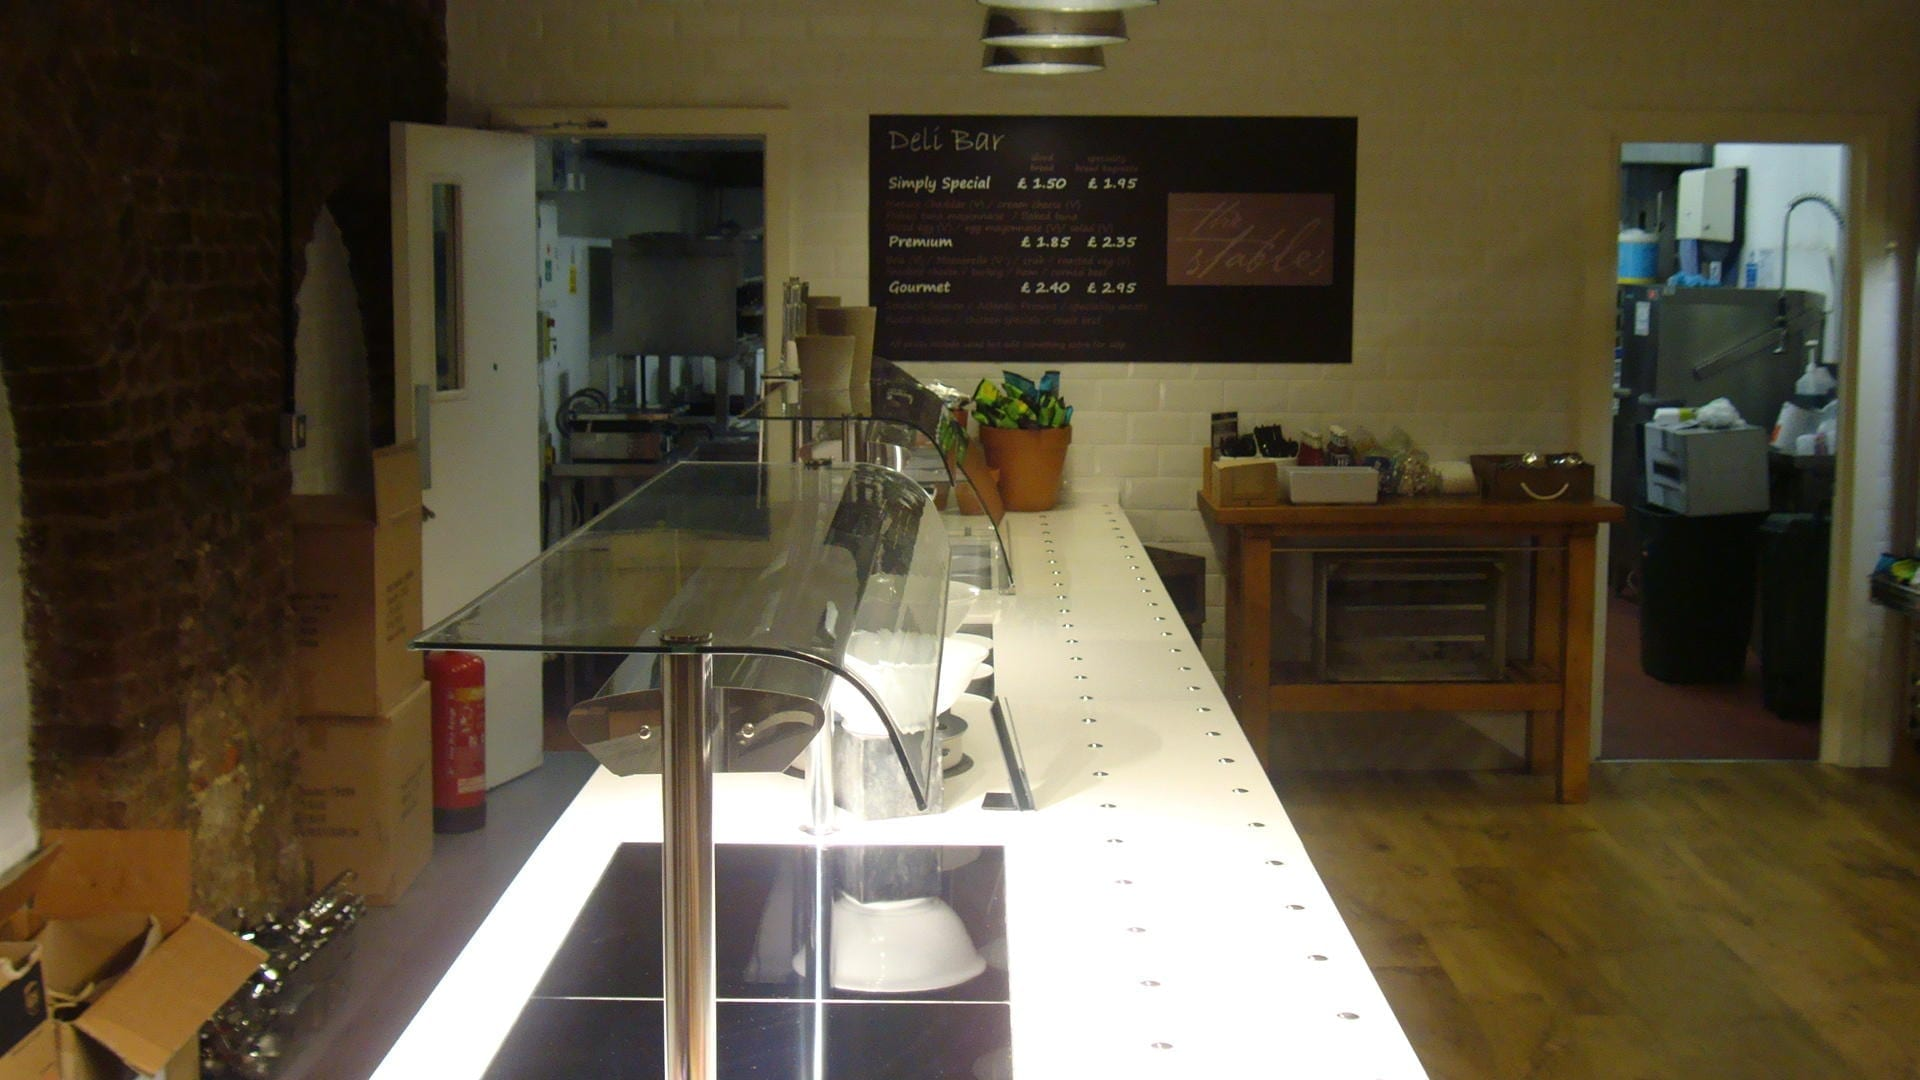 Fullers_Chiswick_Servery_Front_of_house_Servery_Food_Display_spacecatering_6